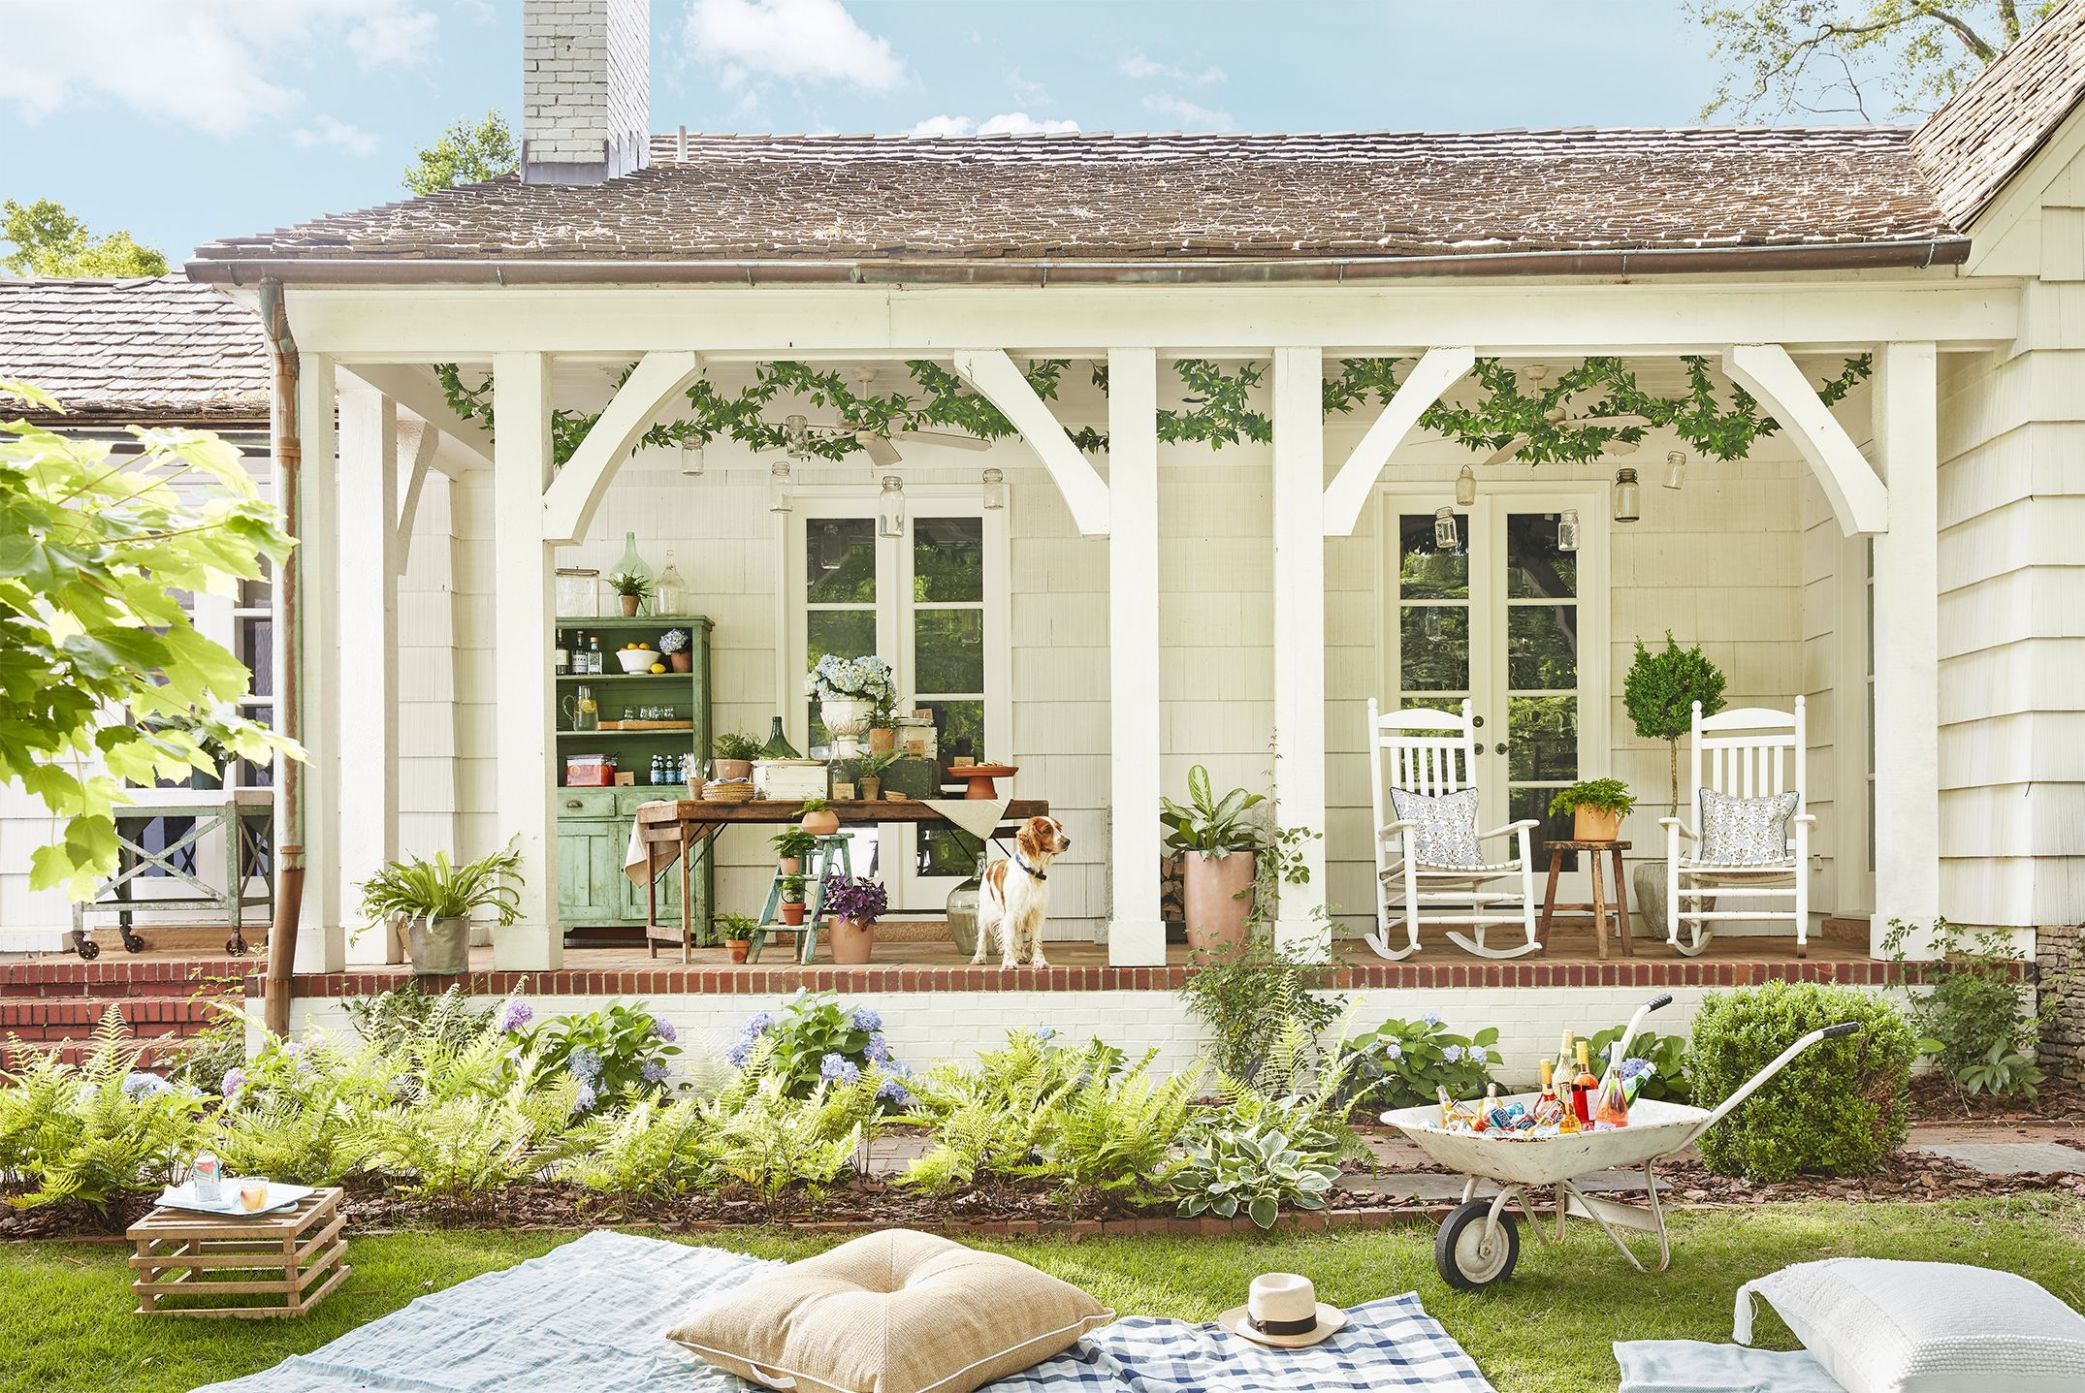 12 Best Front Porch Ideas - Ideas for Front Porch and Patio Decorating - front porch ideas